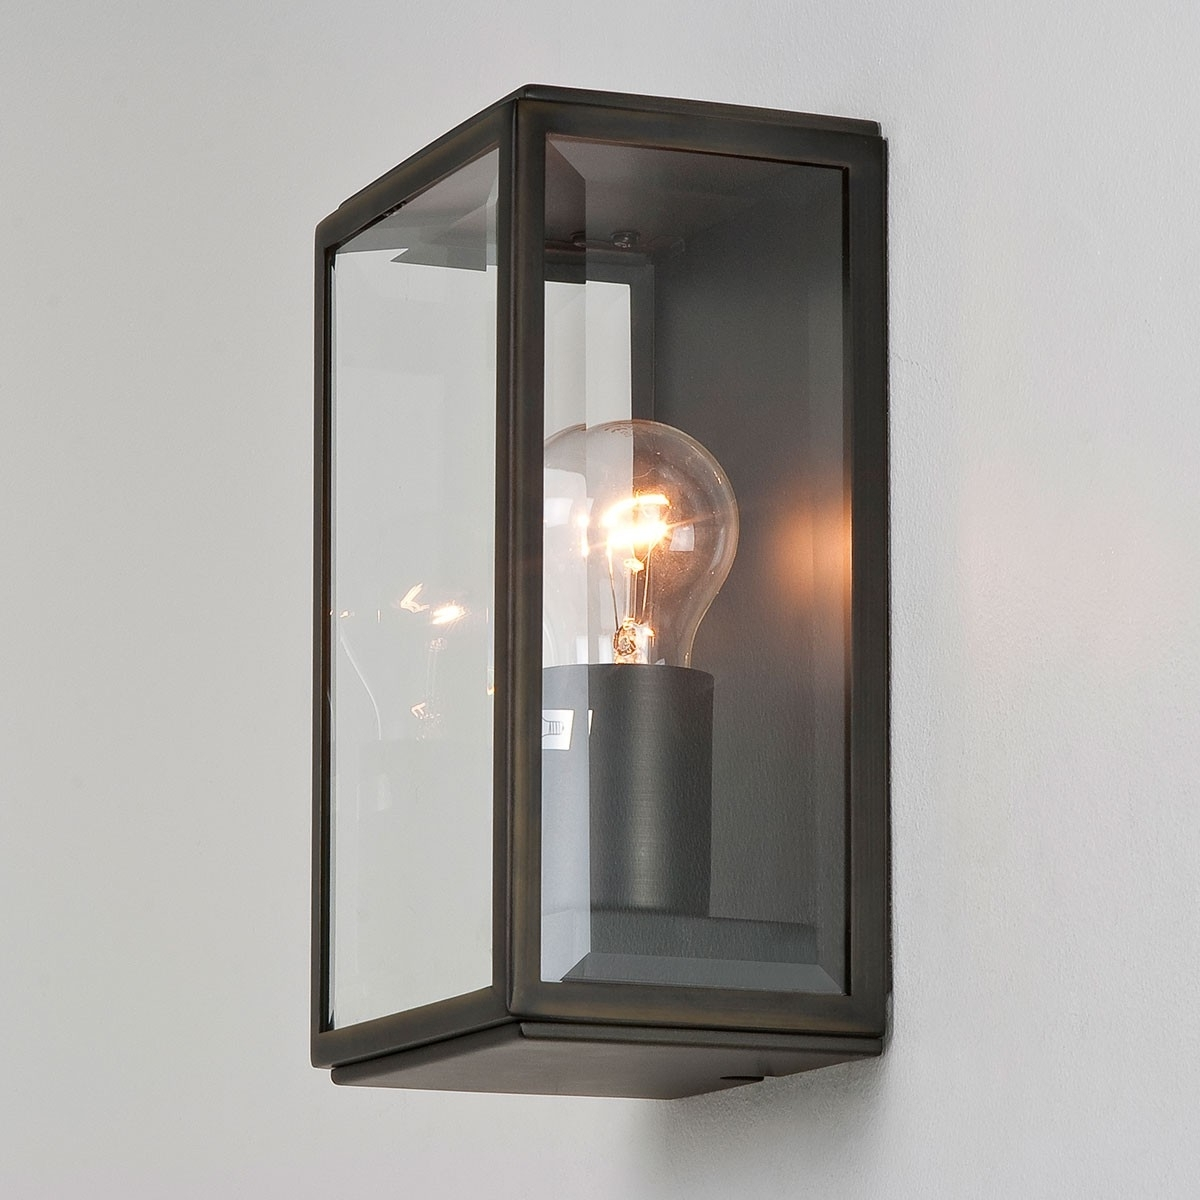 2019 Astro Homefield Bronze Outdoor Wall Light At Uk Electrical Supplies (View 2 of 20)